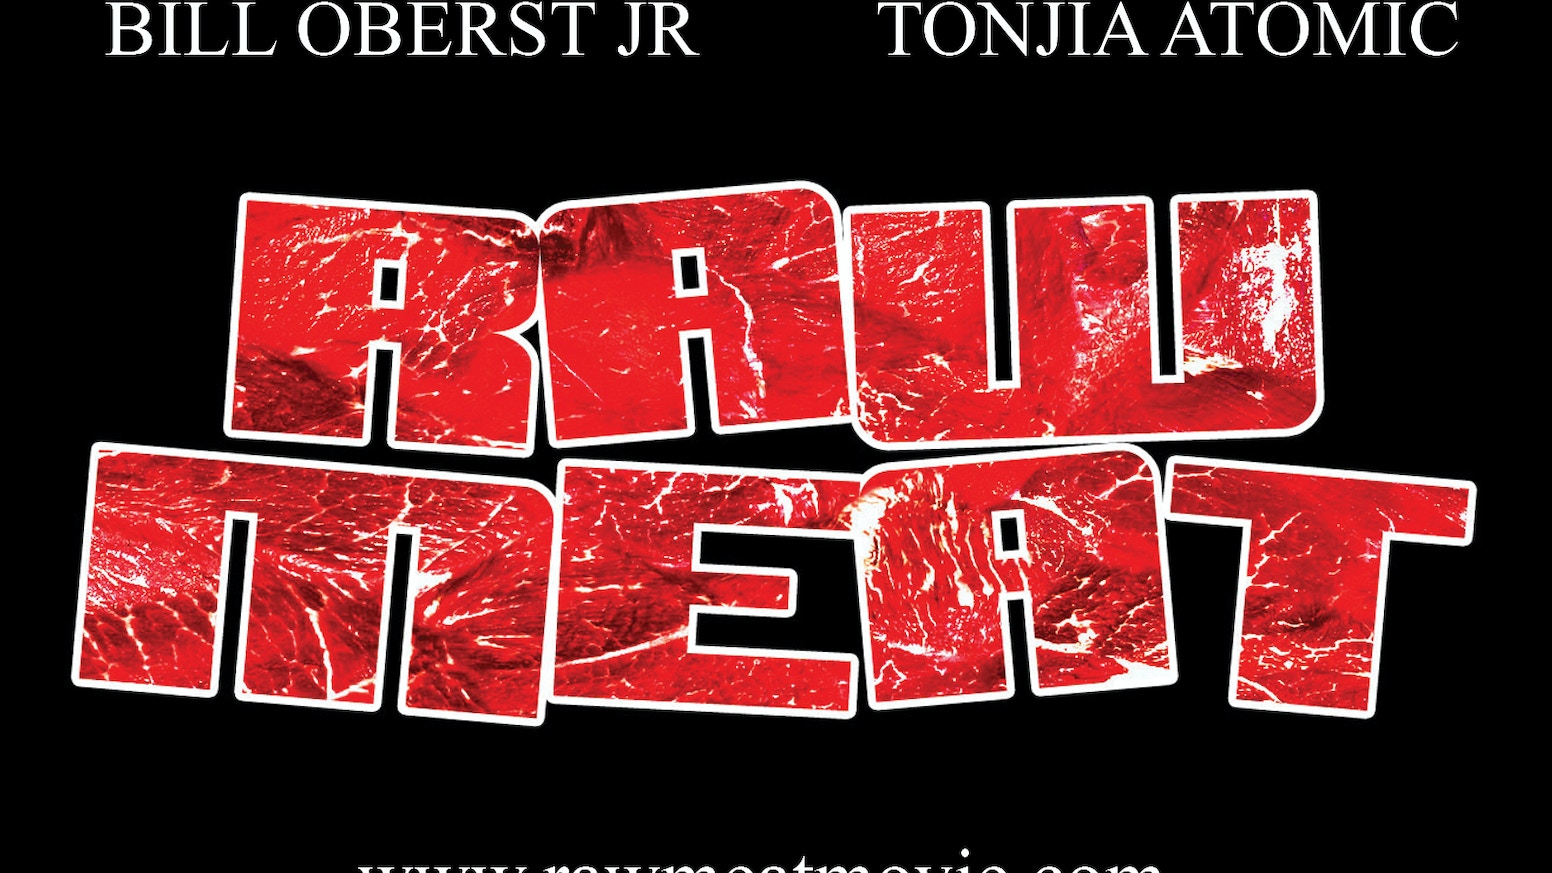 Raw Meat is the story of a skinless killer and his quest for vengeance, from the twisted minds of Bill Oberst Jr. and Tonjia Atomic.